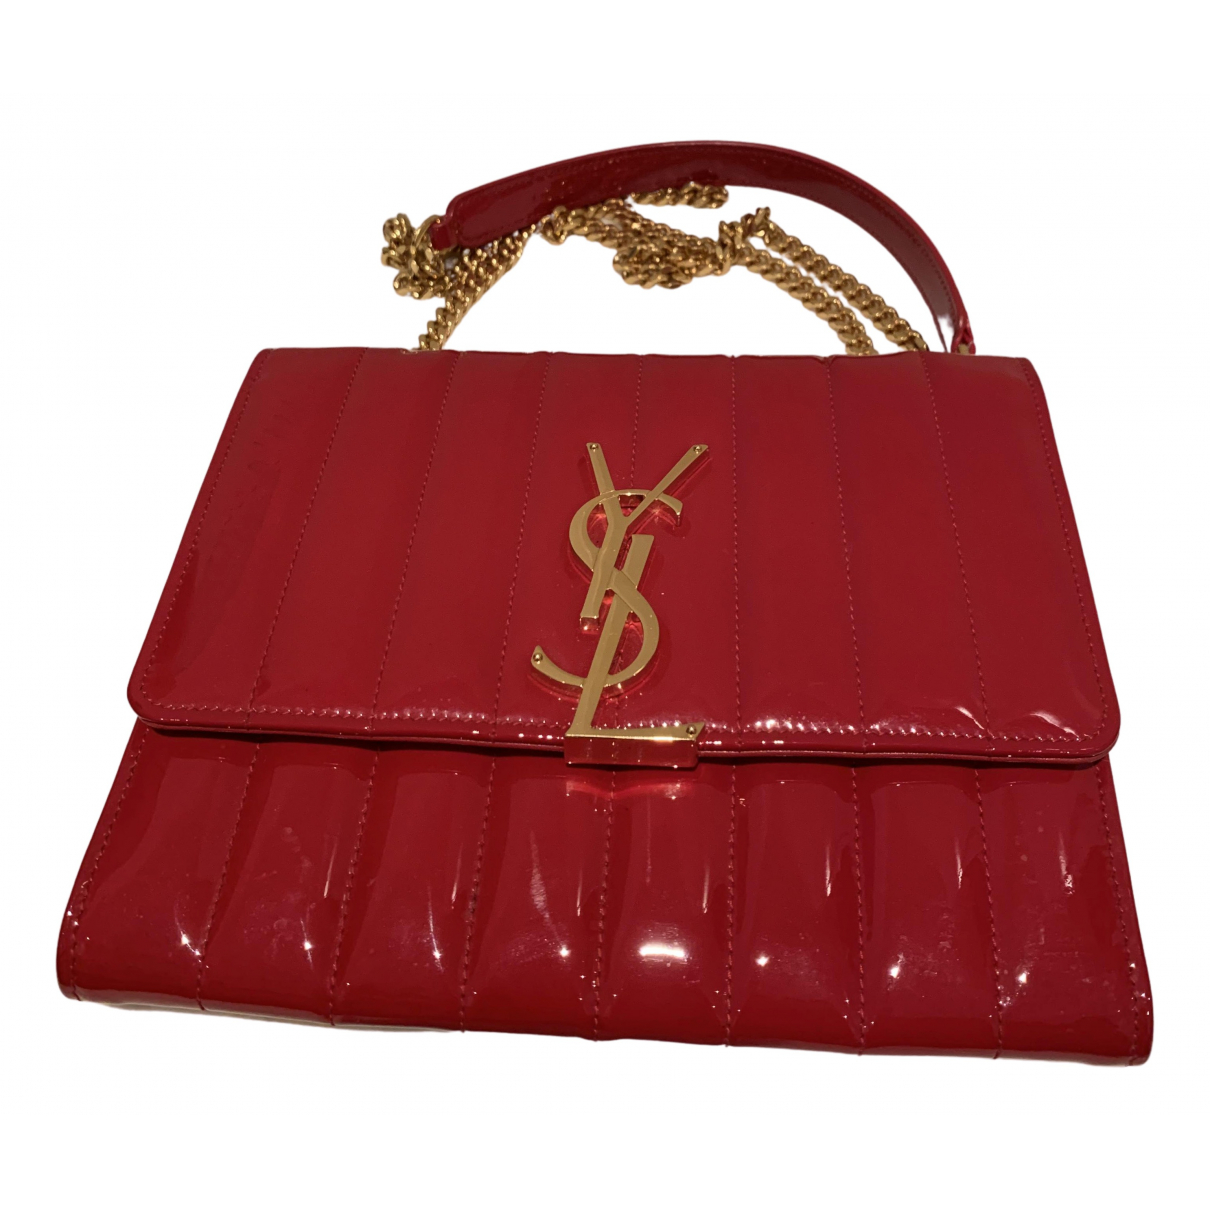 Saint Laurent Vicky Red Patent leather handbag for Women N